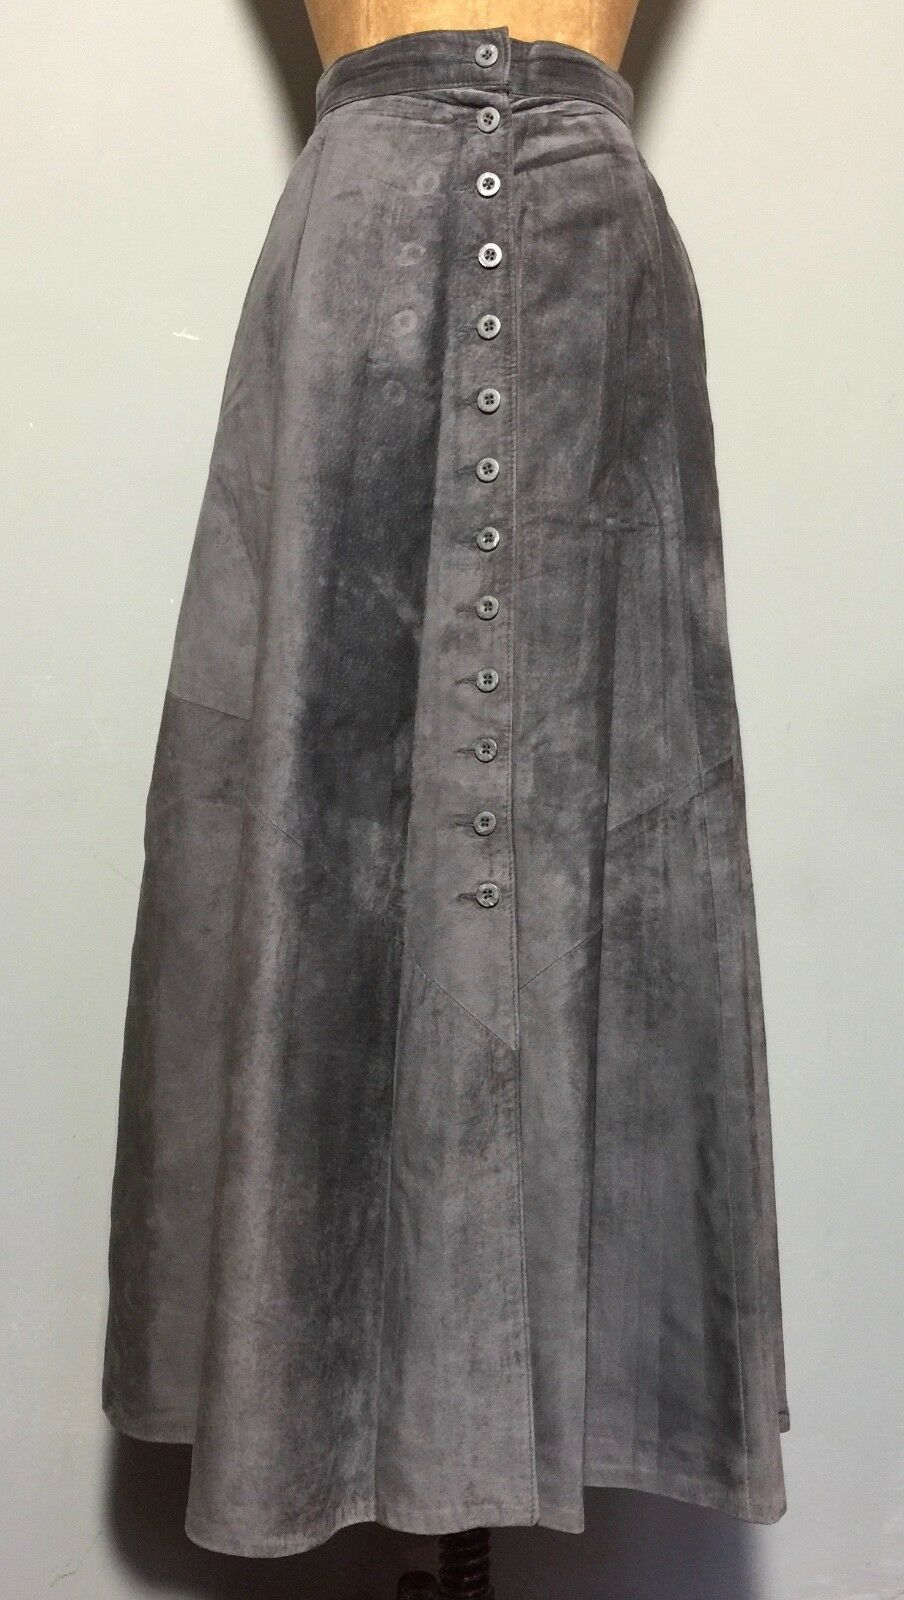 VINTAGE 1990s QUALITY 'DANIER' GREY SUEDE BUTTON FRONT SKIRT W 32